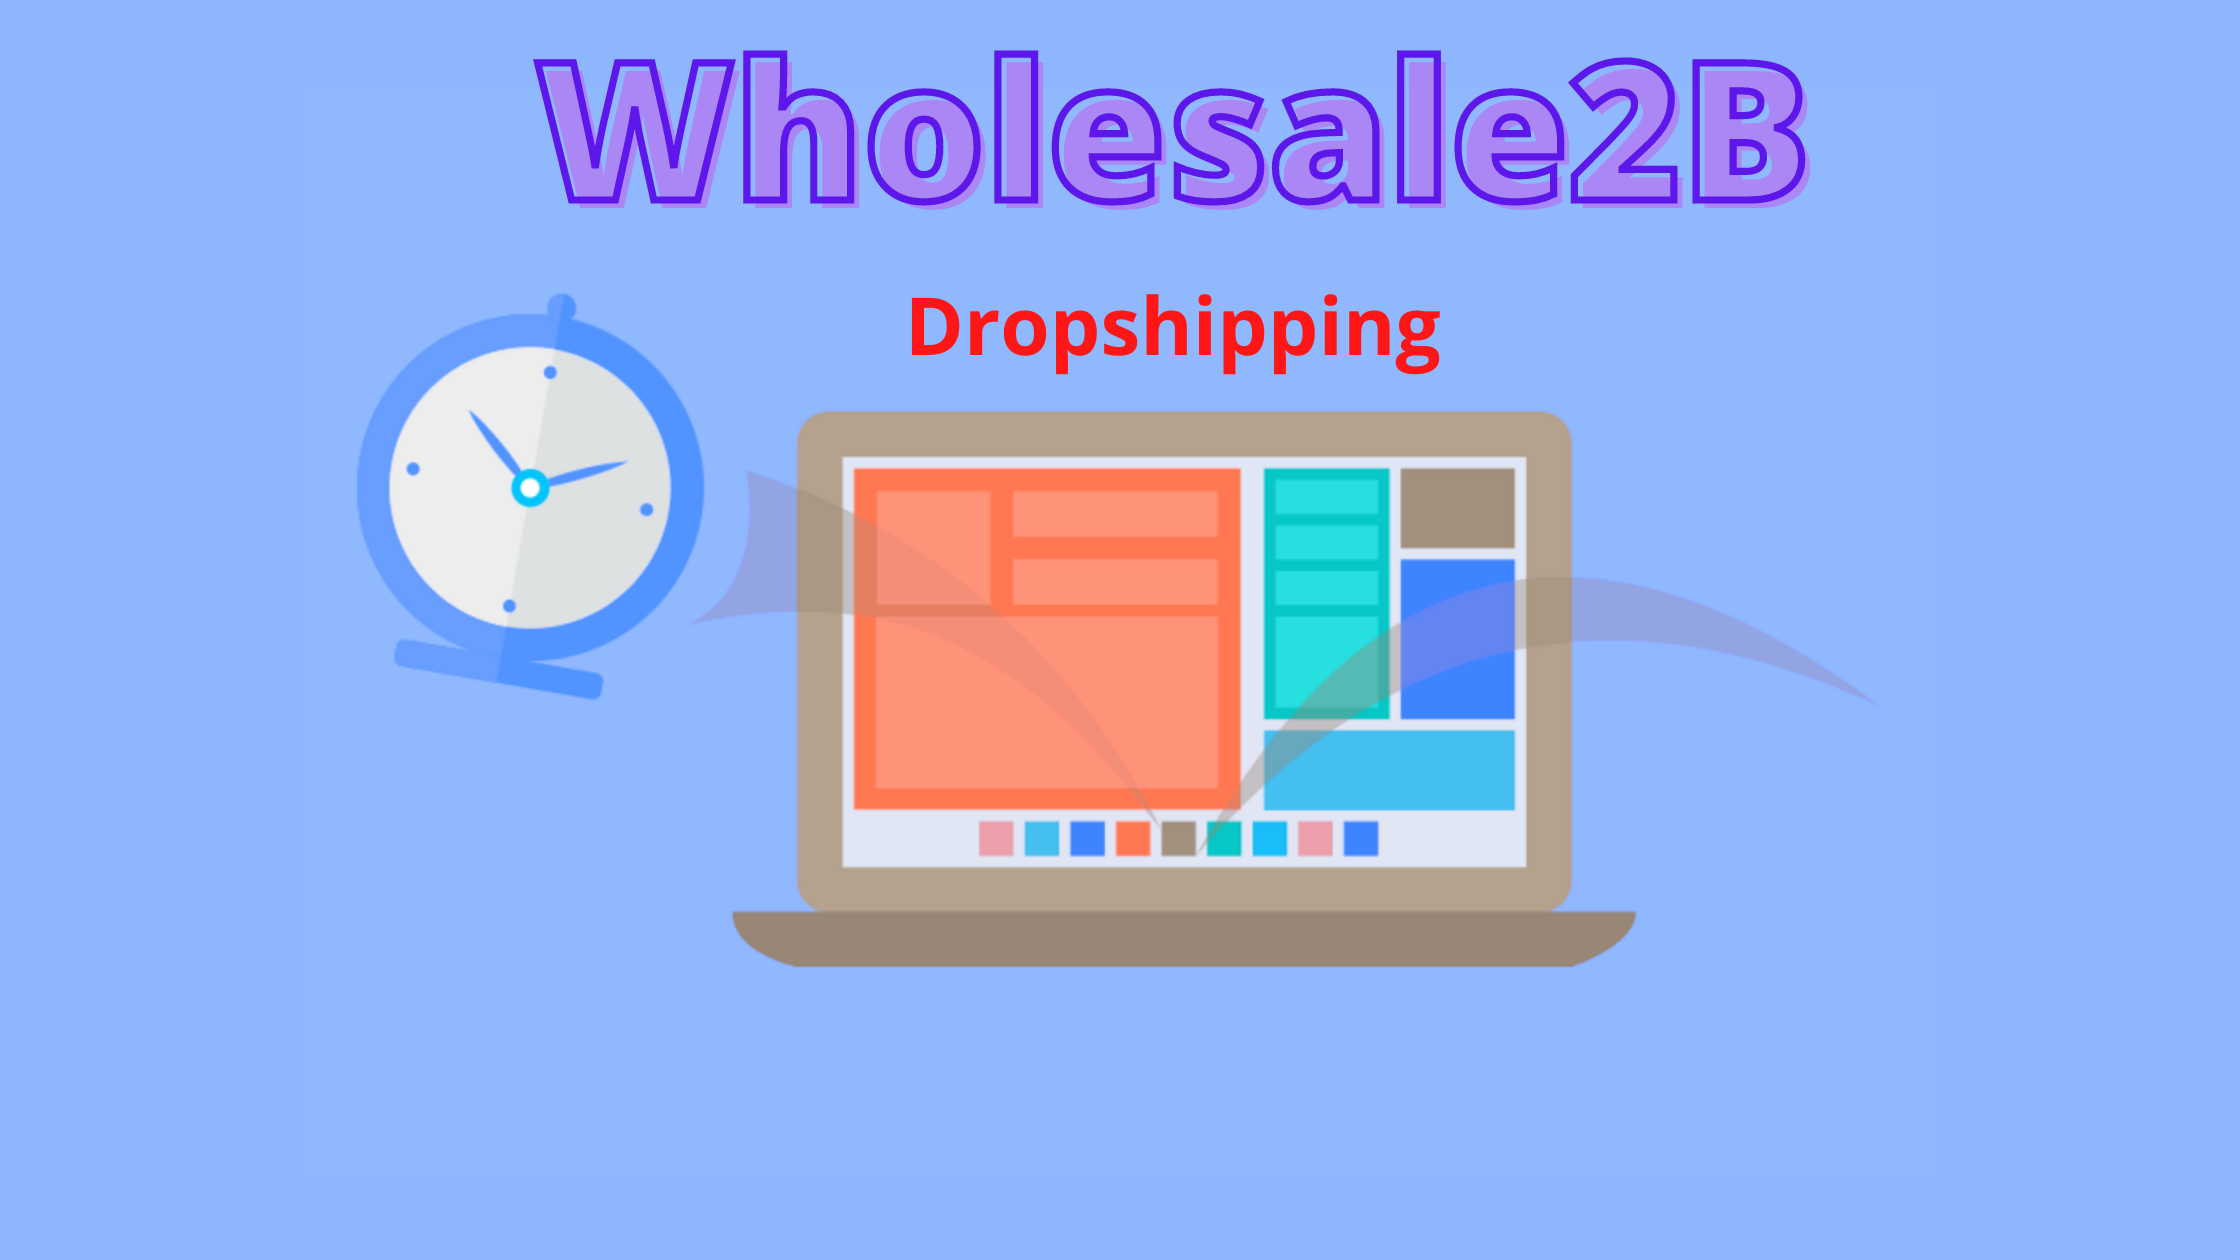 What is Wholesale2B